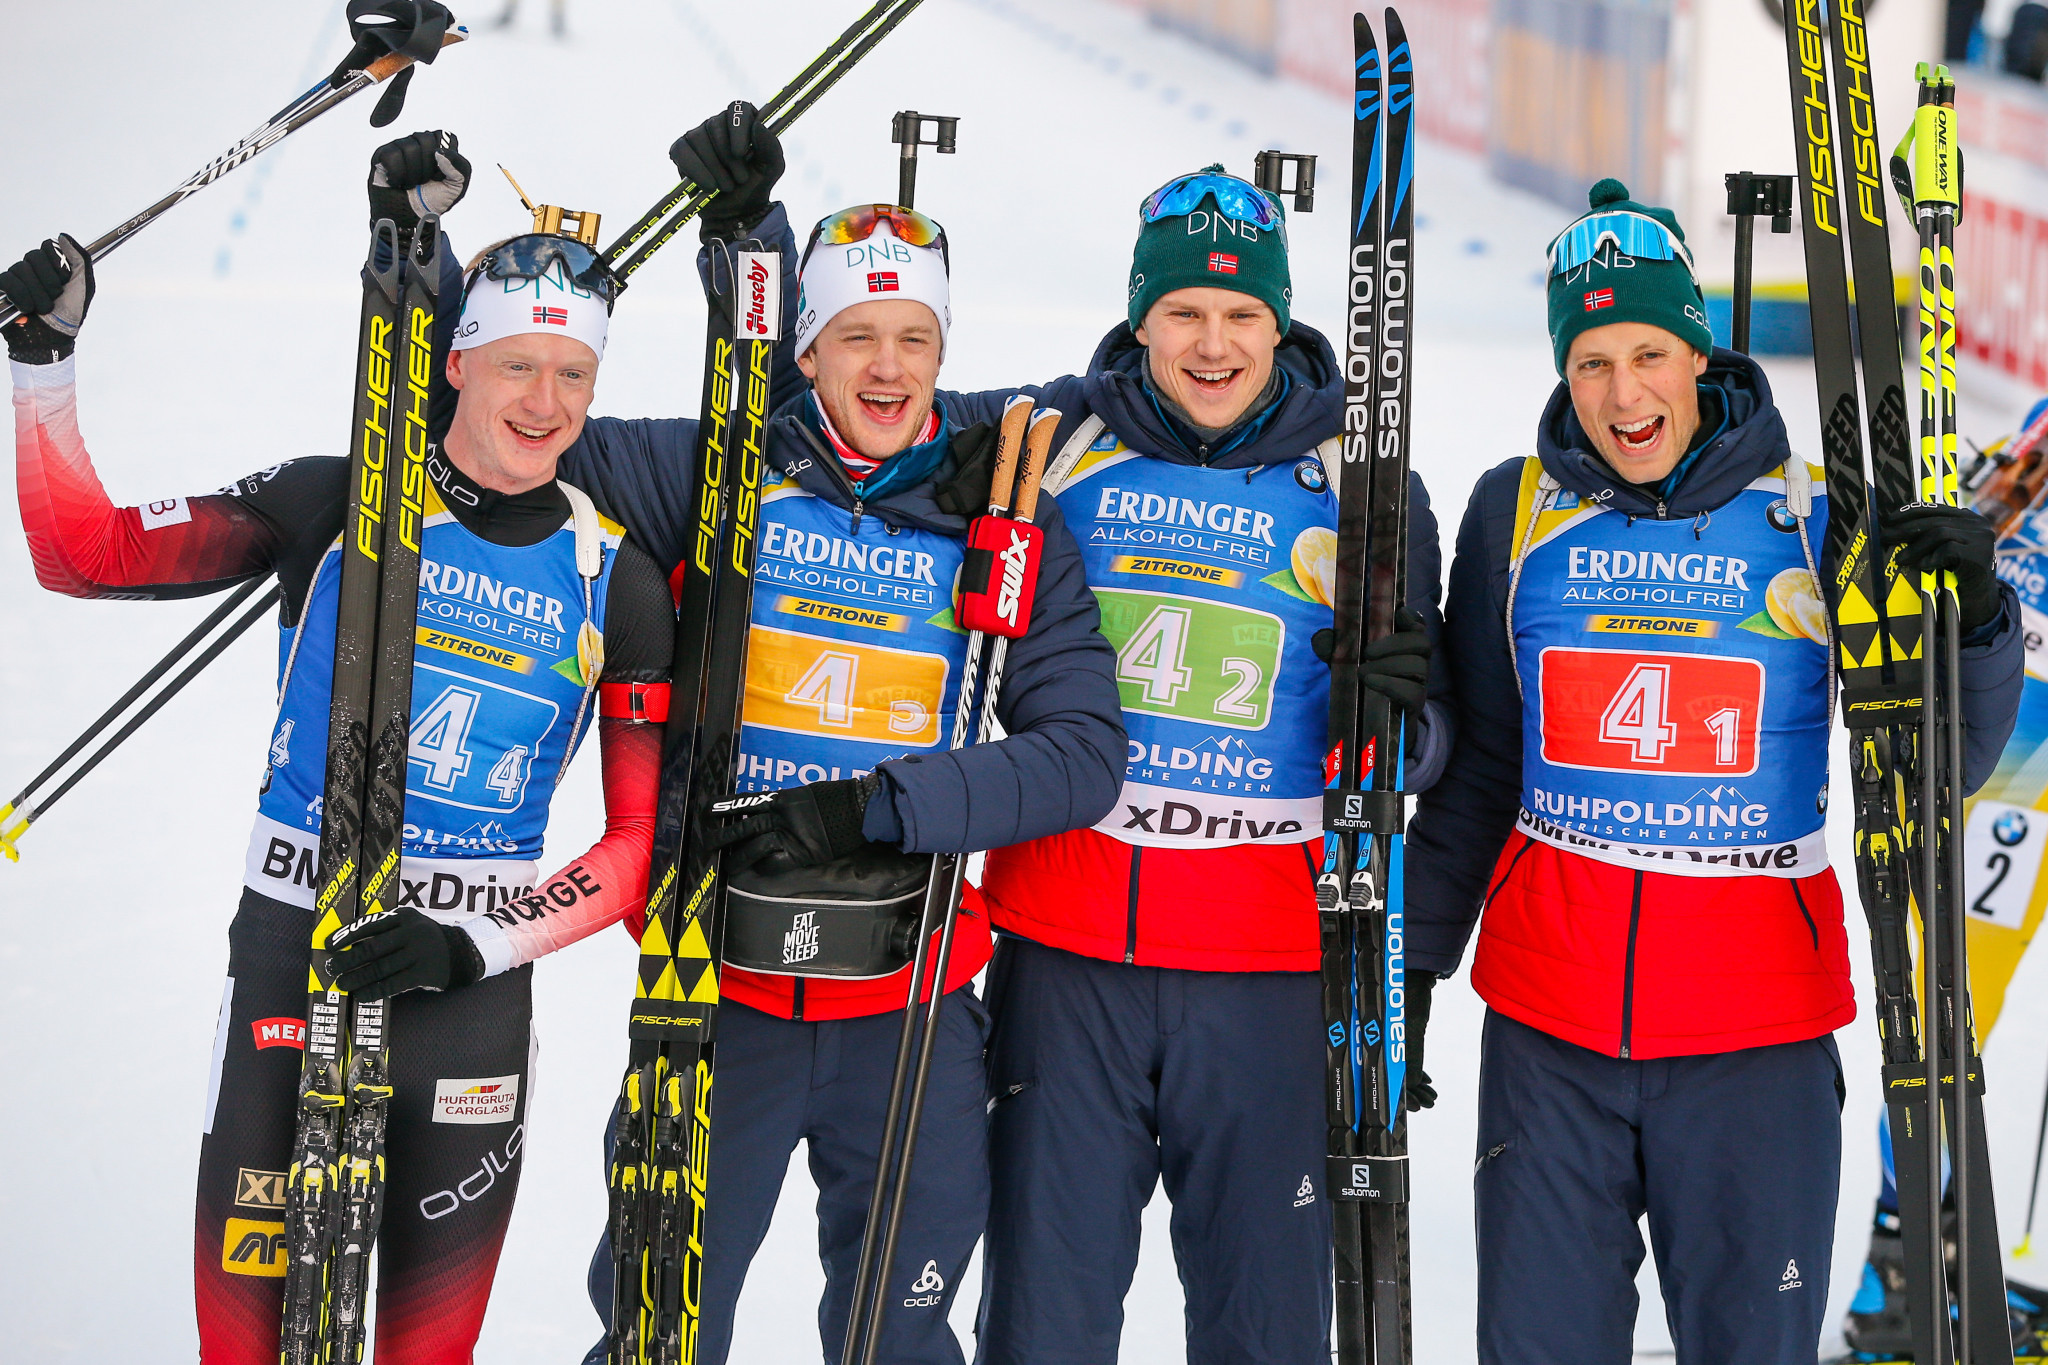 The Bø brothers Johannes and Tarjei alongside Lars Helge Birkeland and Vetle Sjaastad Christiansen won the men's relay today in Ruhpolding ©Getty Images